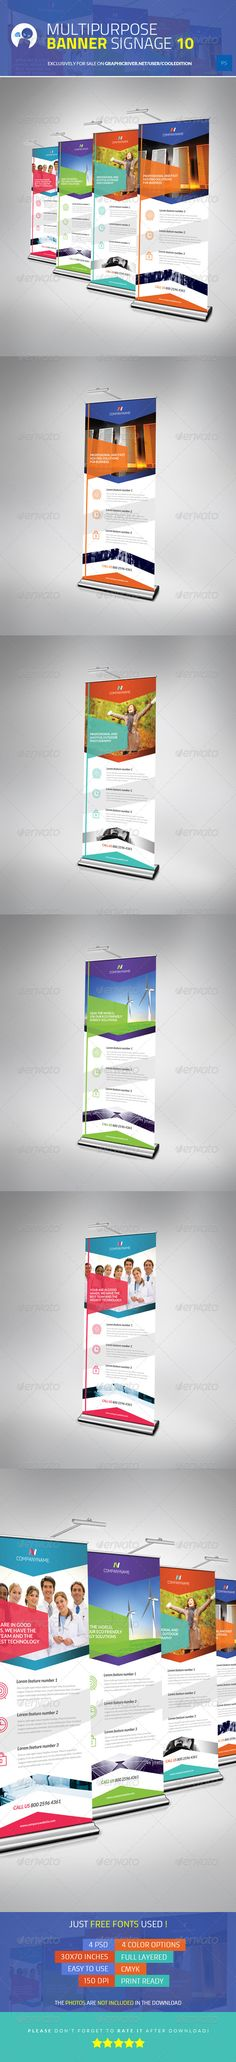 Buy Multipurpose Banner Signage 10 by cooledition on GraphicRiver. Multipurpose Banner Signage 10 Suitable for: Booth Design, Banner Design, Photoshop, Roll Up Design, Pop Up Banner, Letterhead Template, Banner Stands, Pose, Cool Business Cards